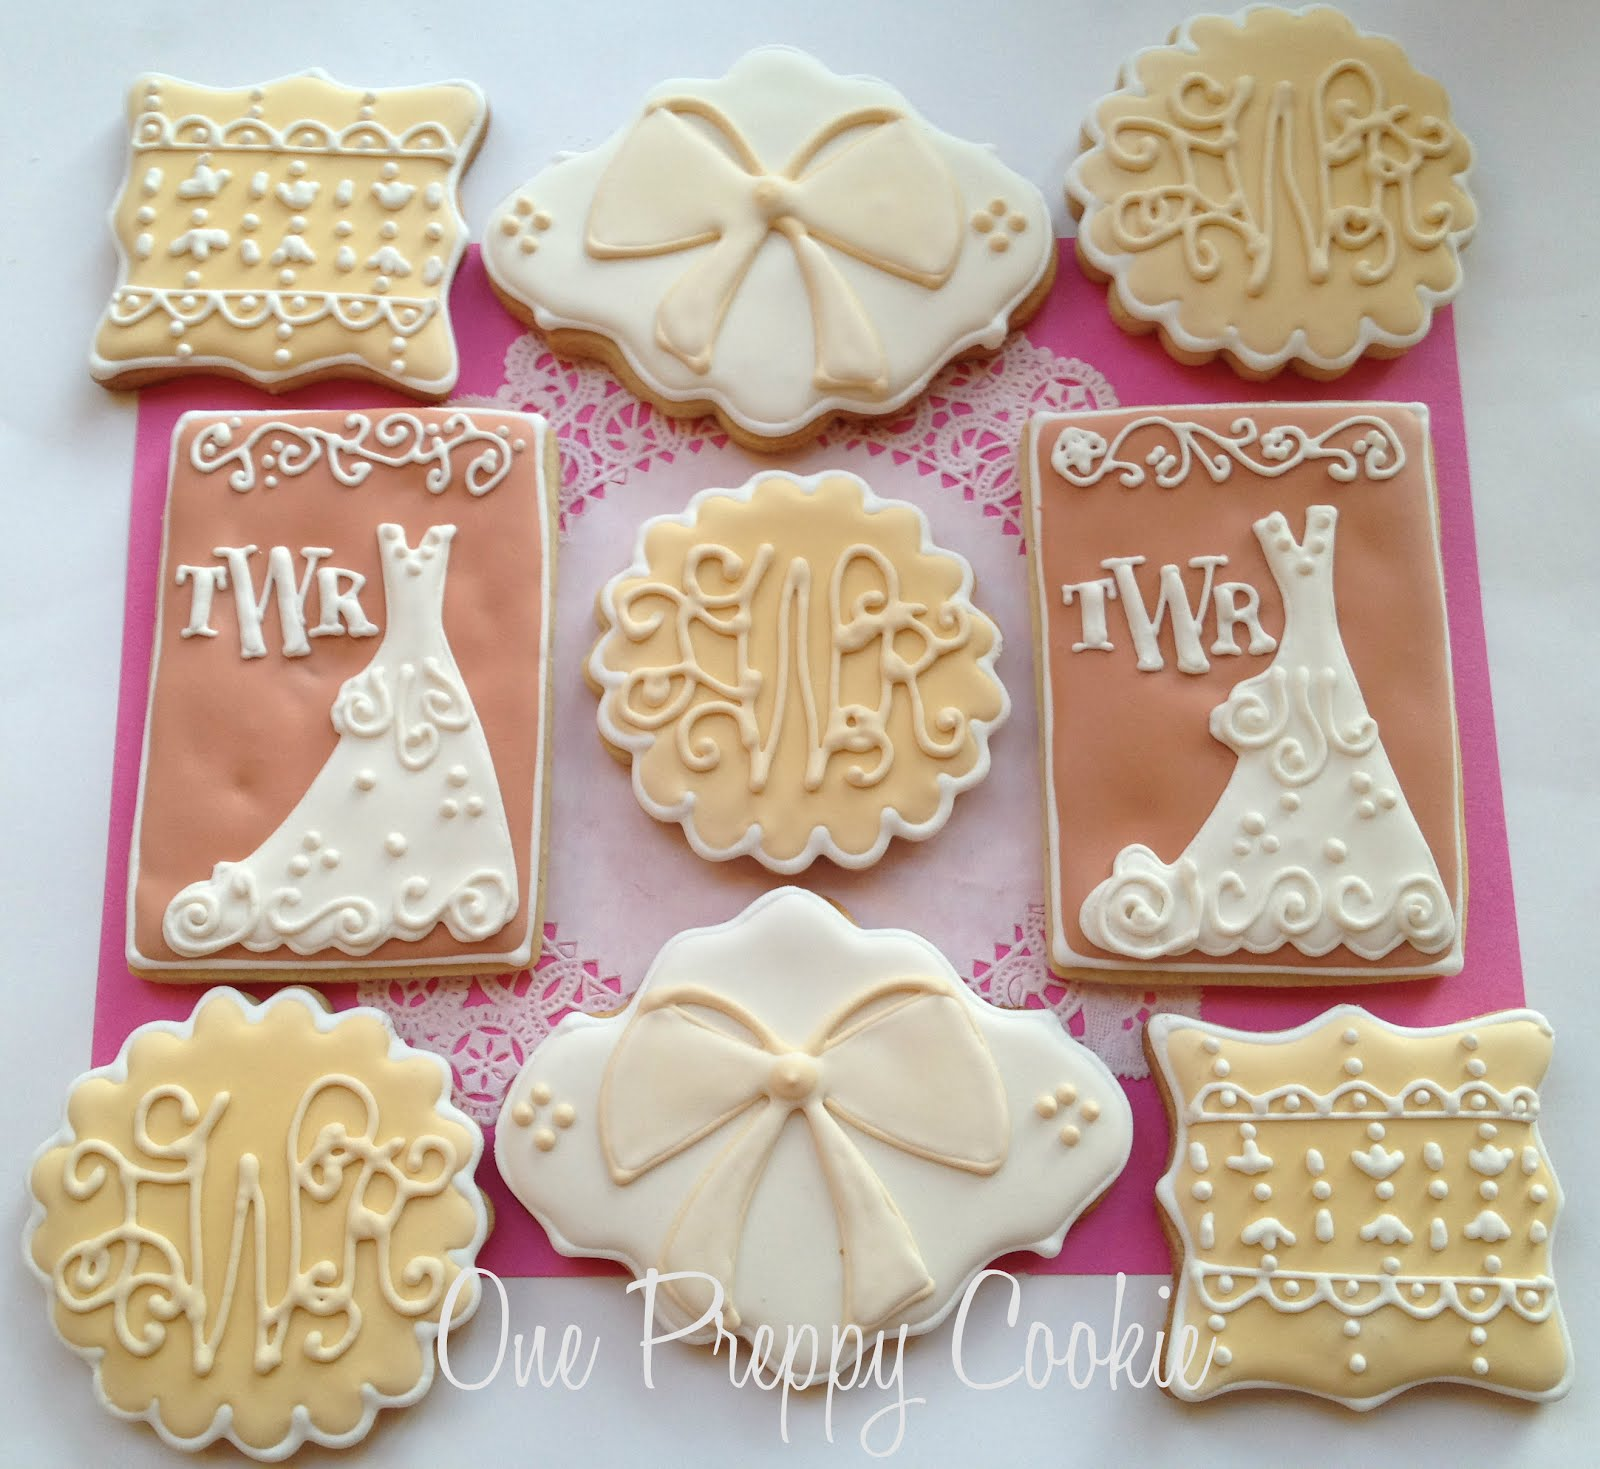 One Preppy Cookie: Elegant Bridal Shower Cookies